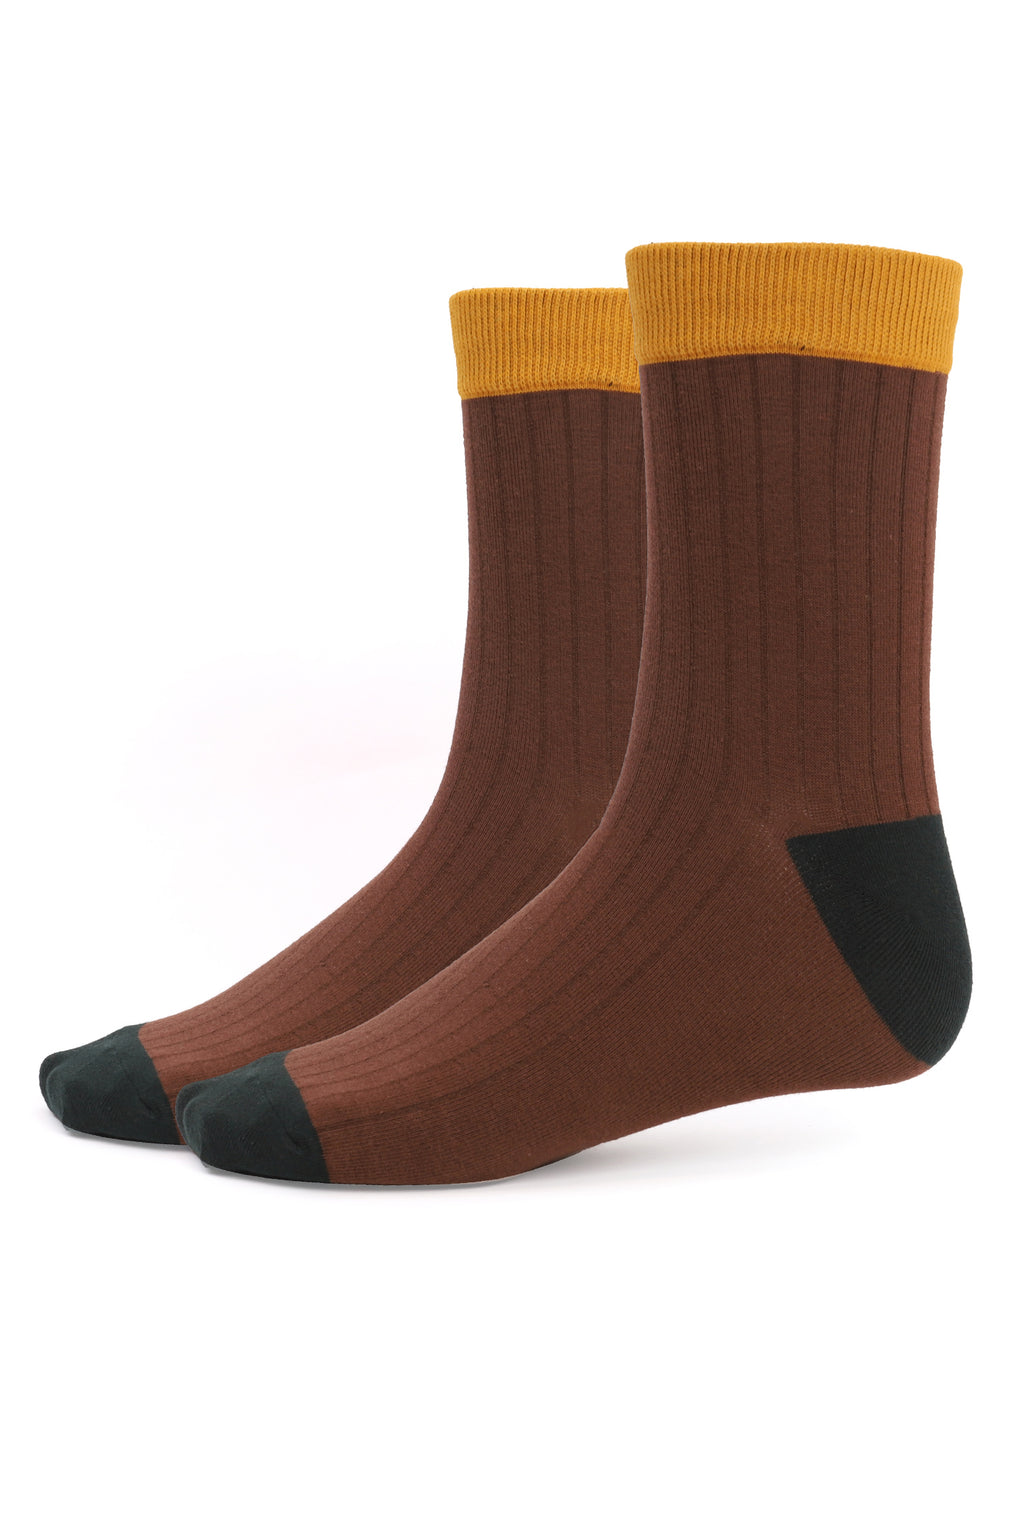 COMBO SOCKS-BROWN